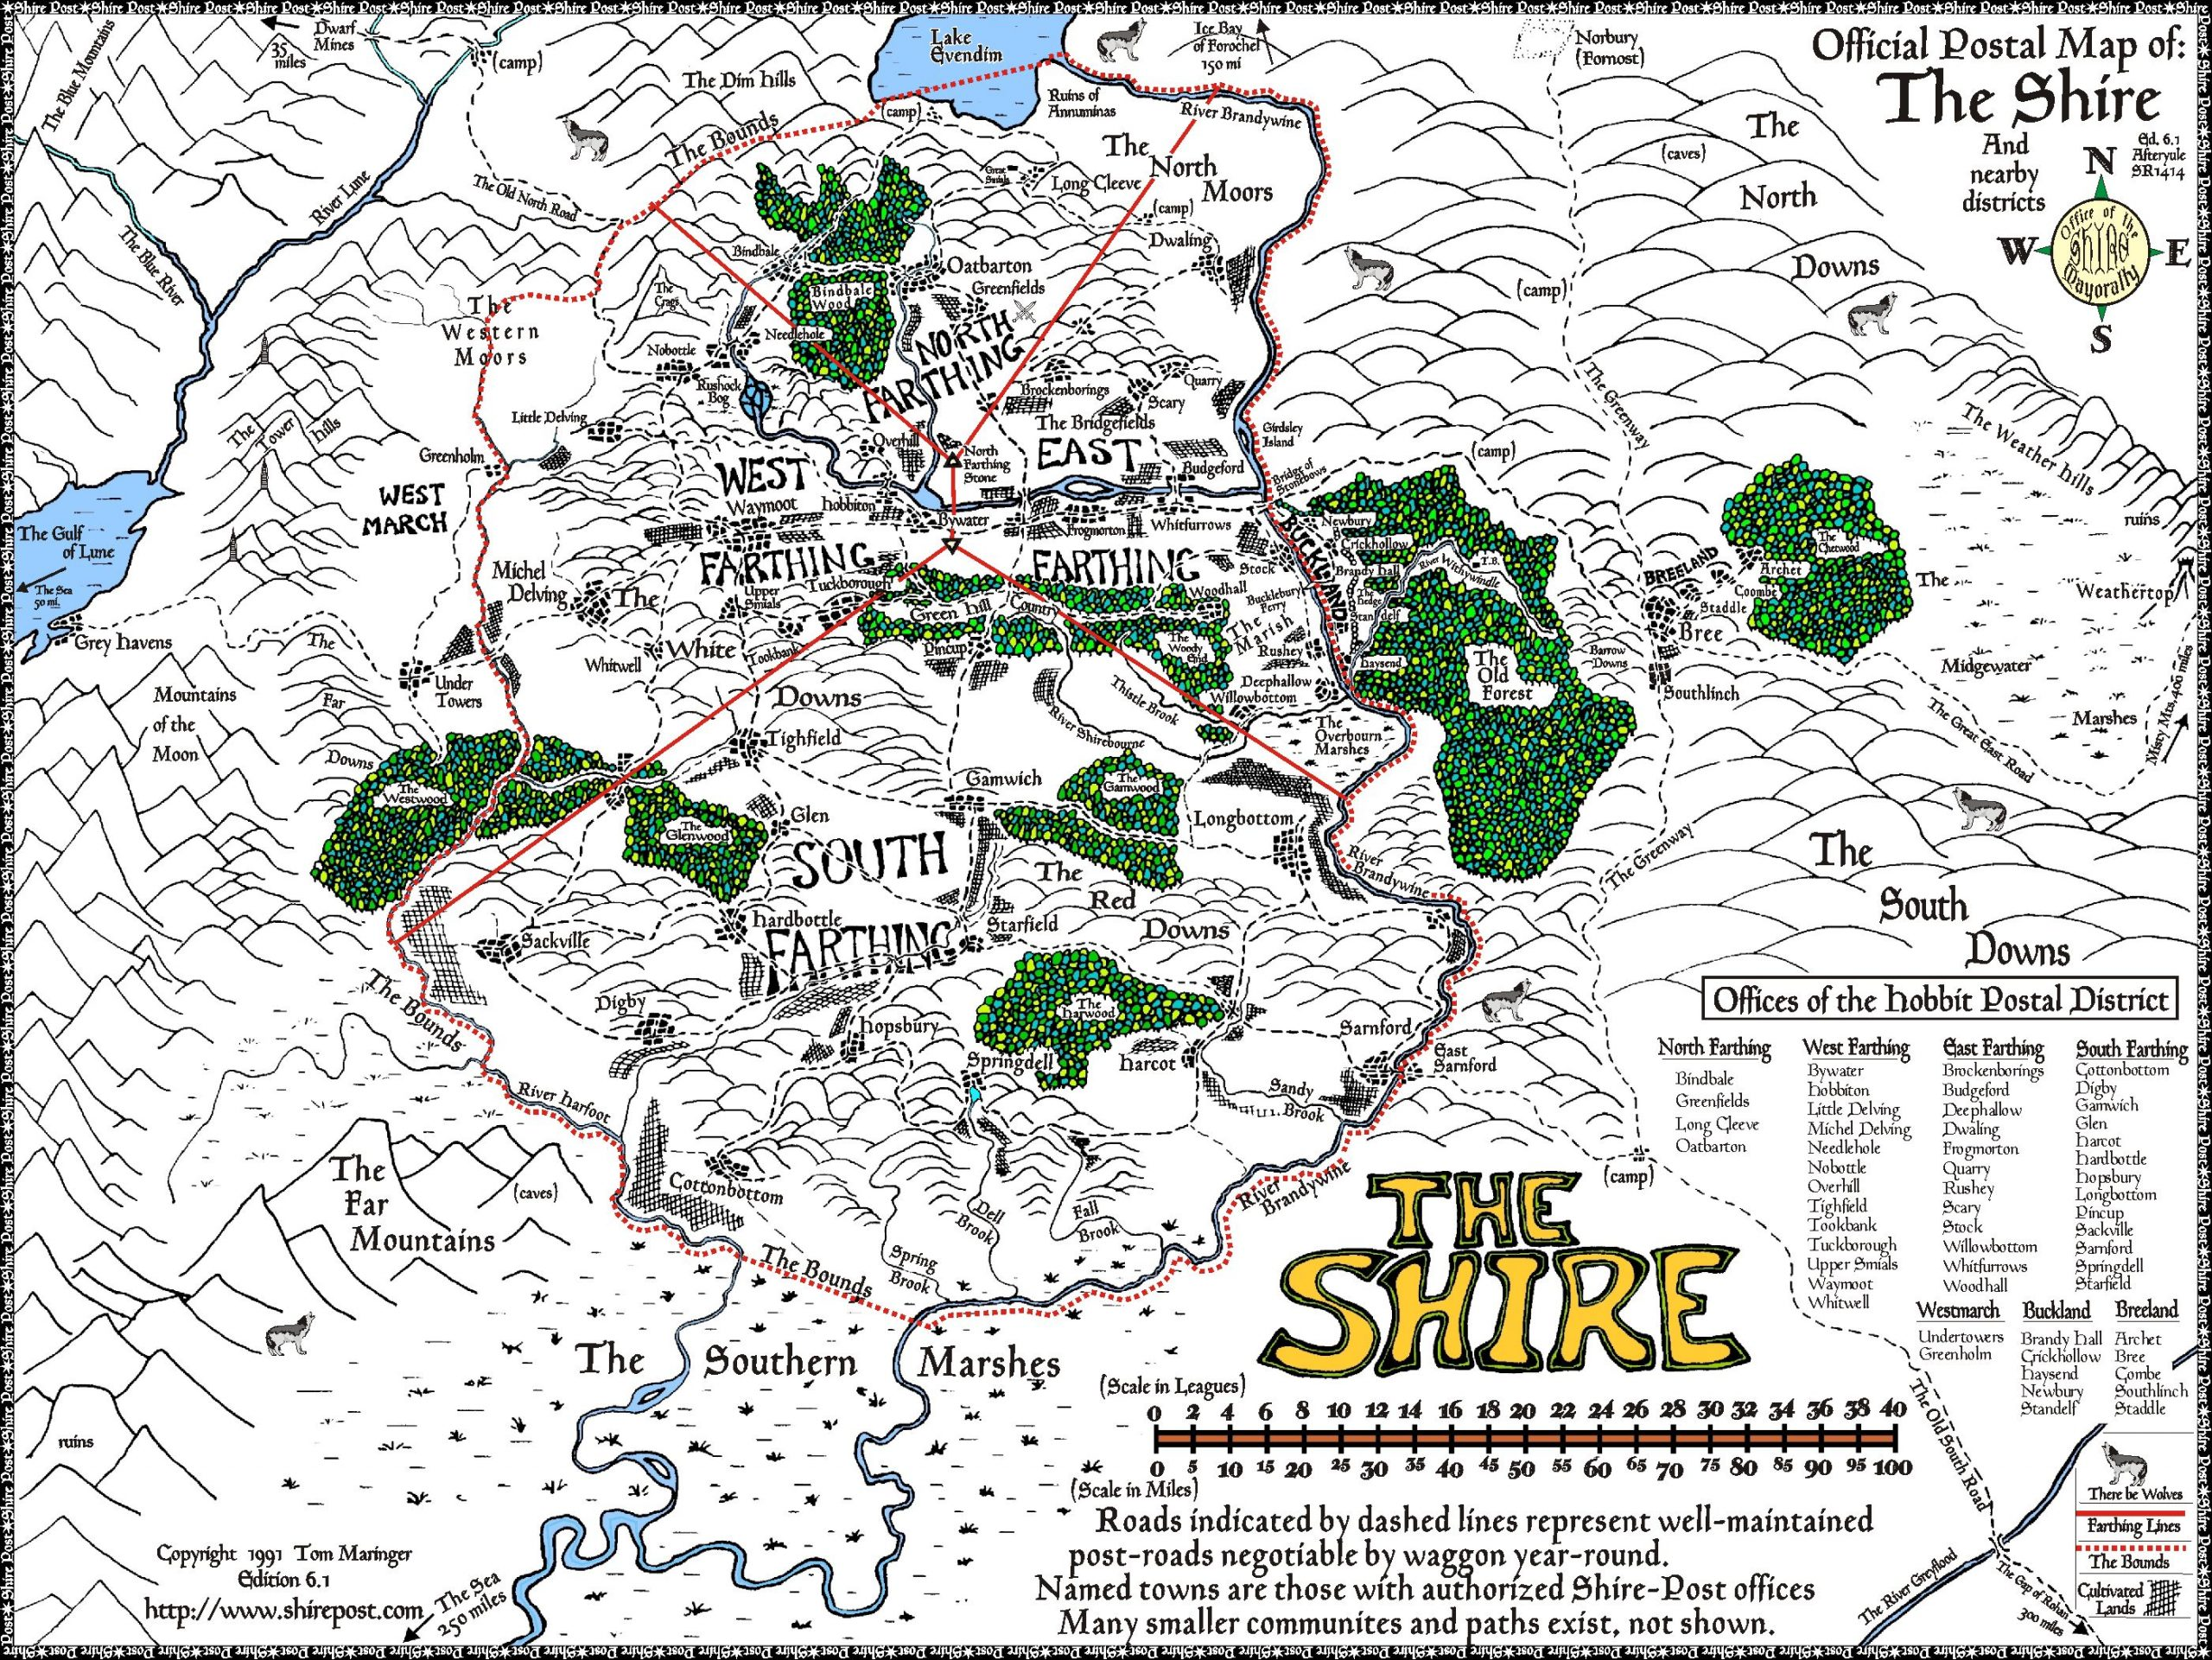 Official Postal Map of the Shire